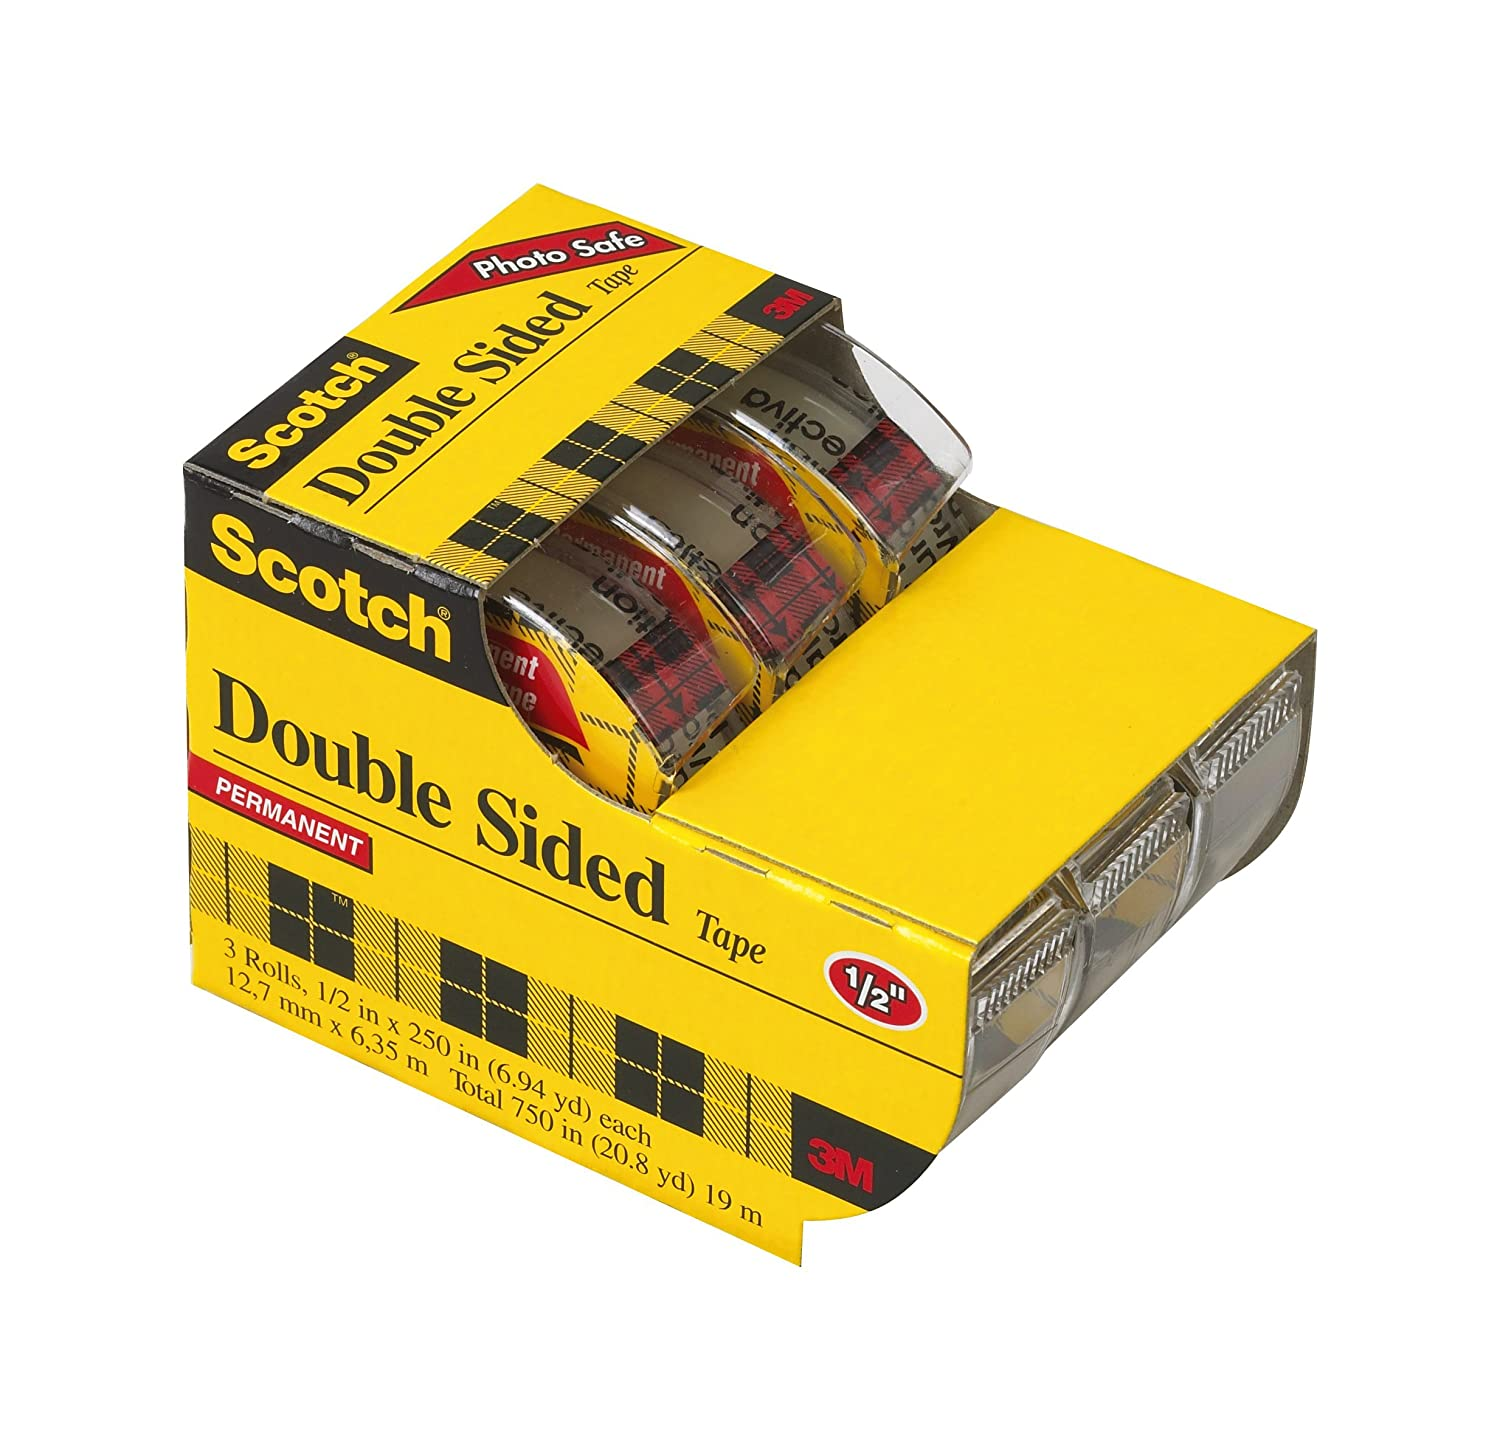 Scotch Double Sided Tape with Dispenser, 1/2 x 250 Inches, 3-Pack Caddy (3136)